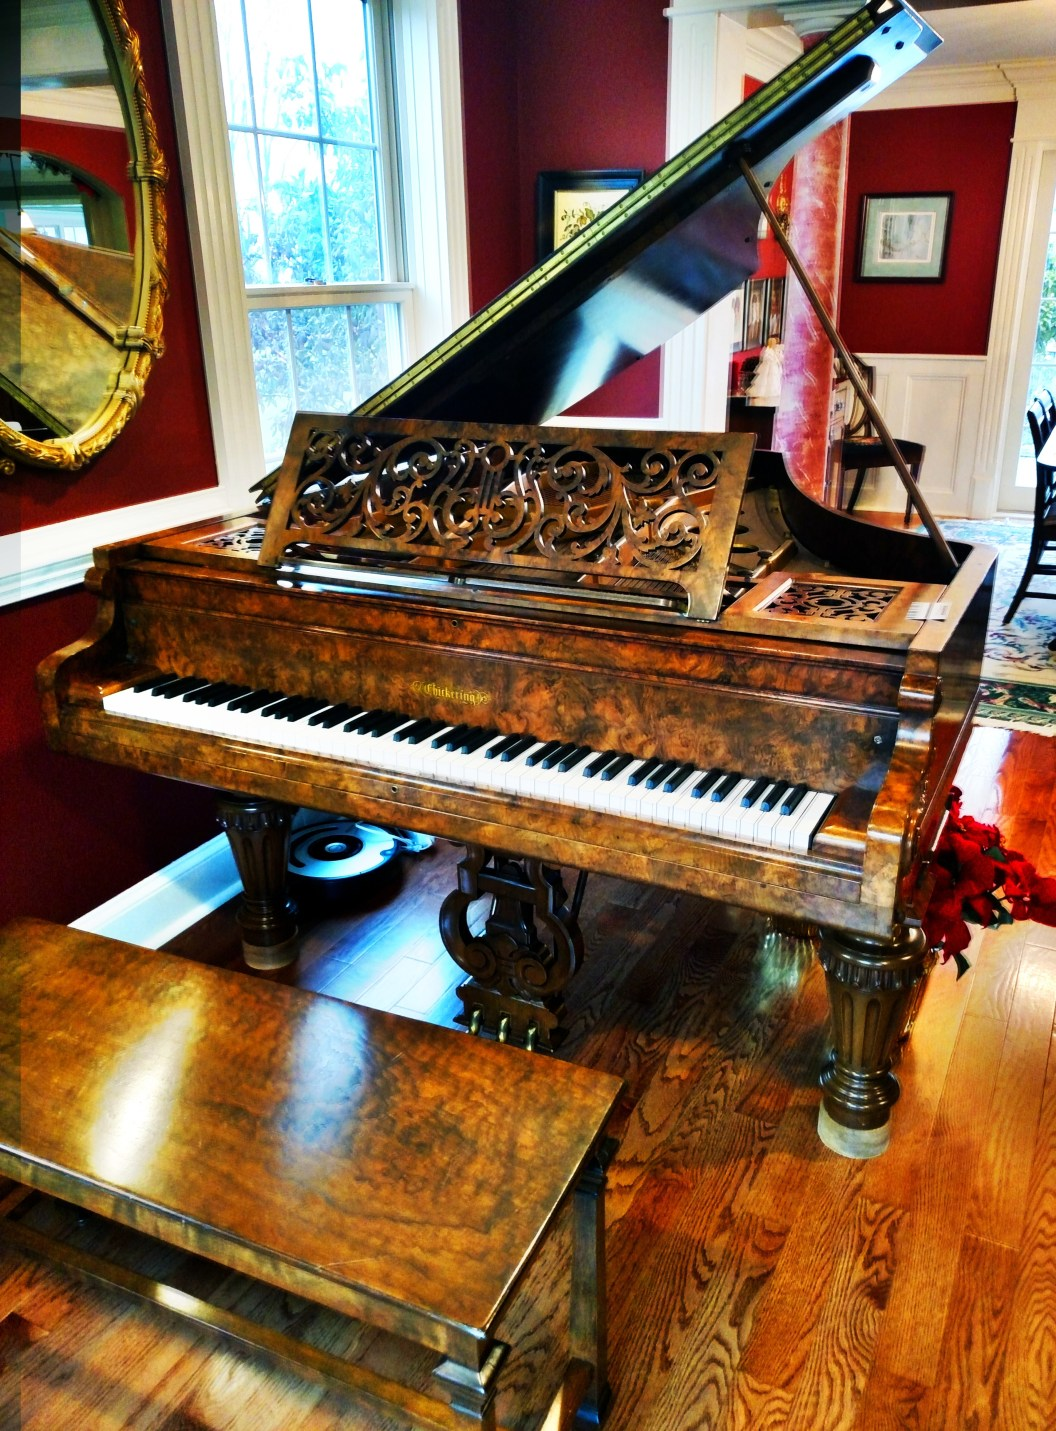 Restore your piano to new